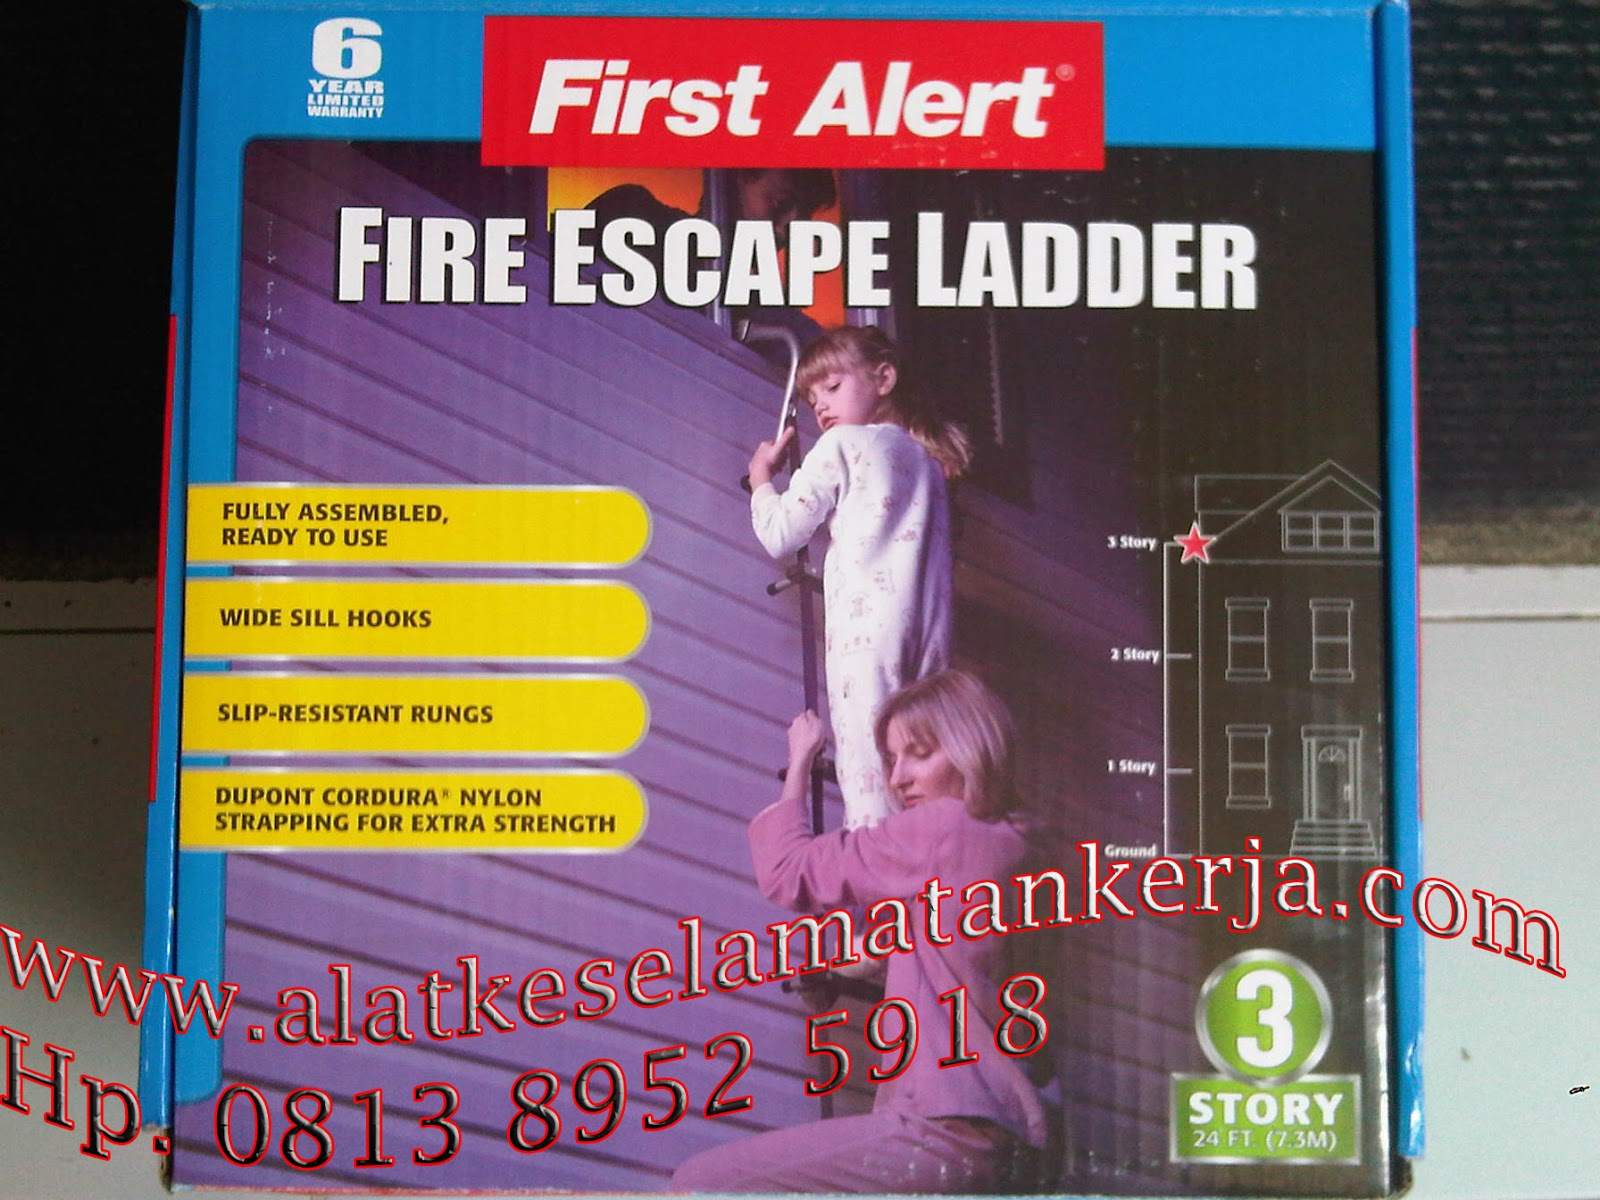 steel Fire Escape Ladder is easy to use FIRE  ESCAPE  LADDER | TANGGA DARURAT 3 LANTAI UNTUK GEDUNG